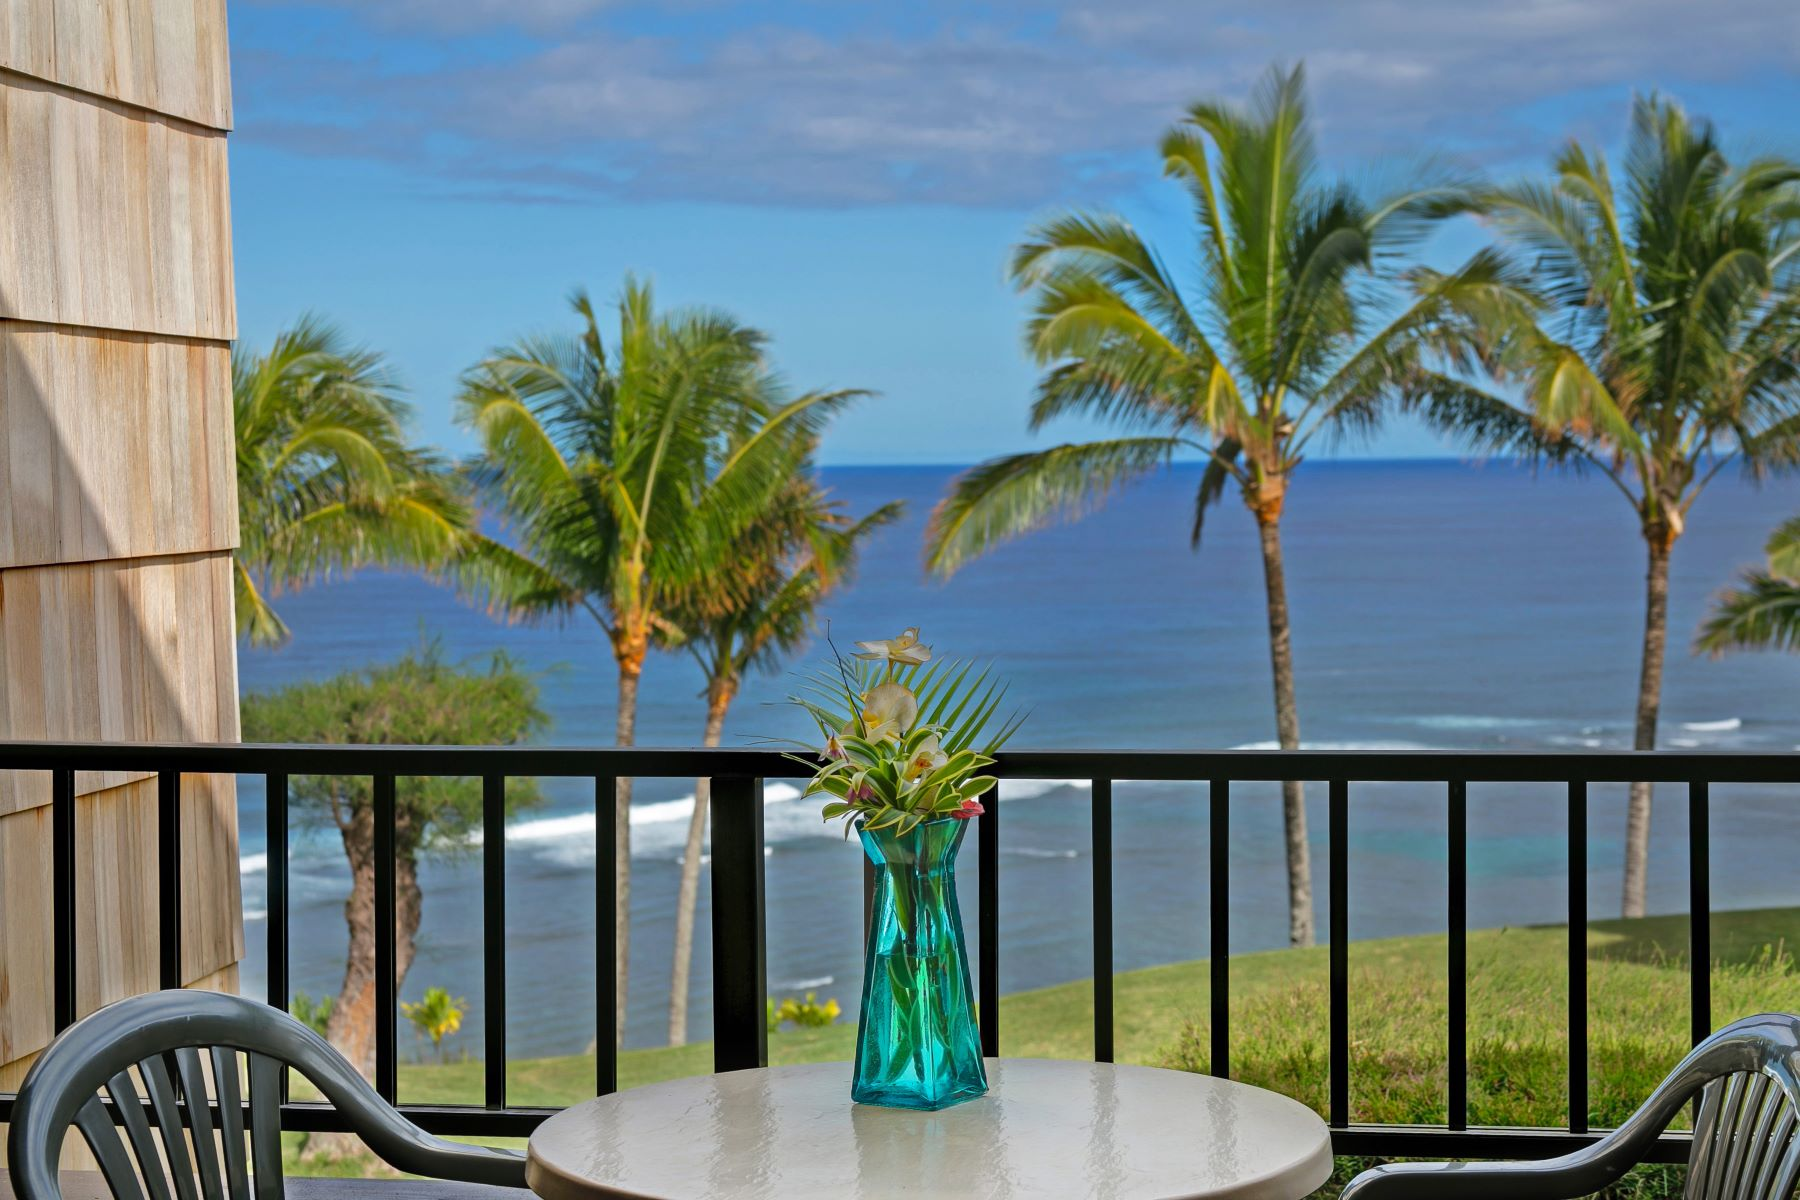 شقة بعمارة للـ Sale في Sealodge II 3700 Kamehameha Road #H5, Princeville, Hawaii, 96722 United States